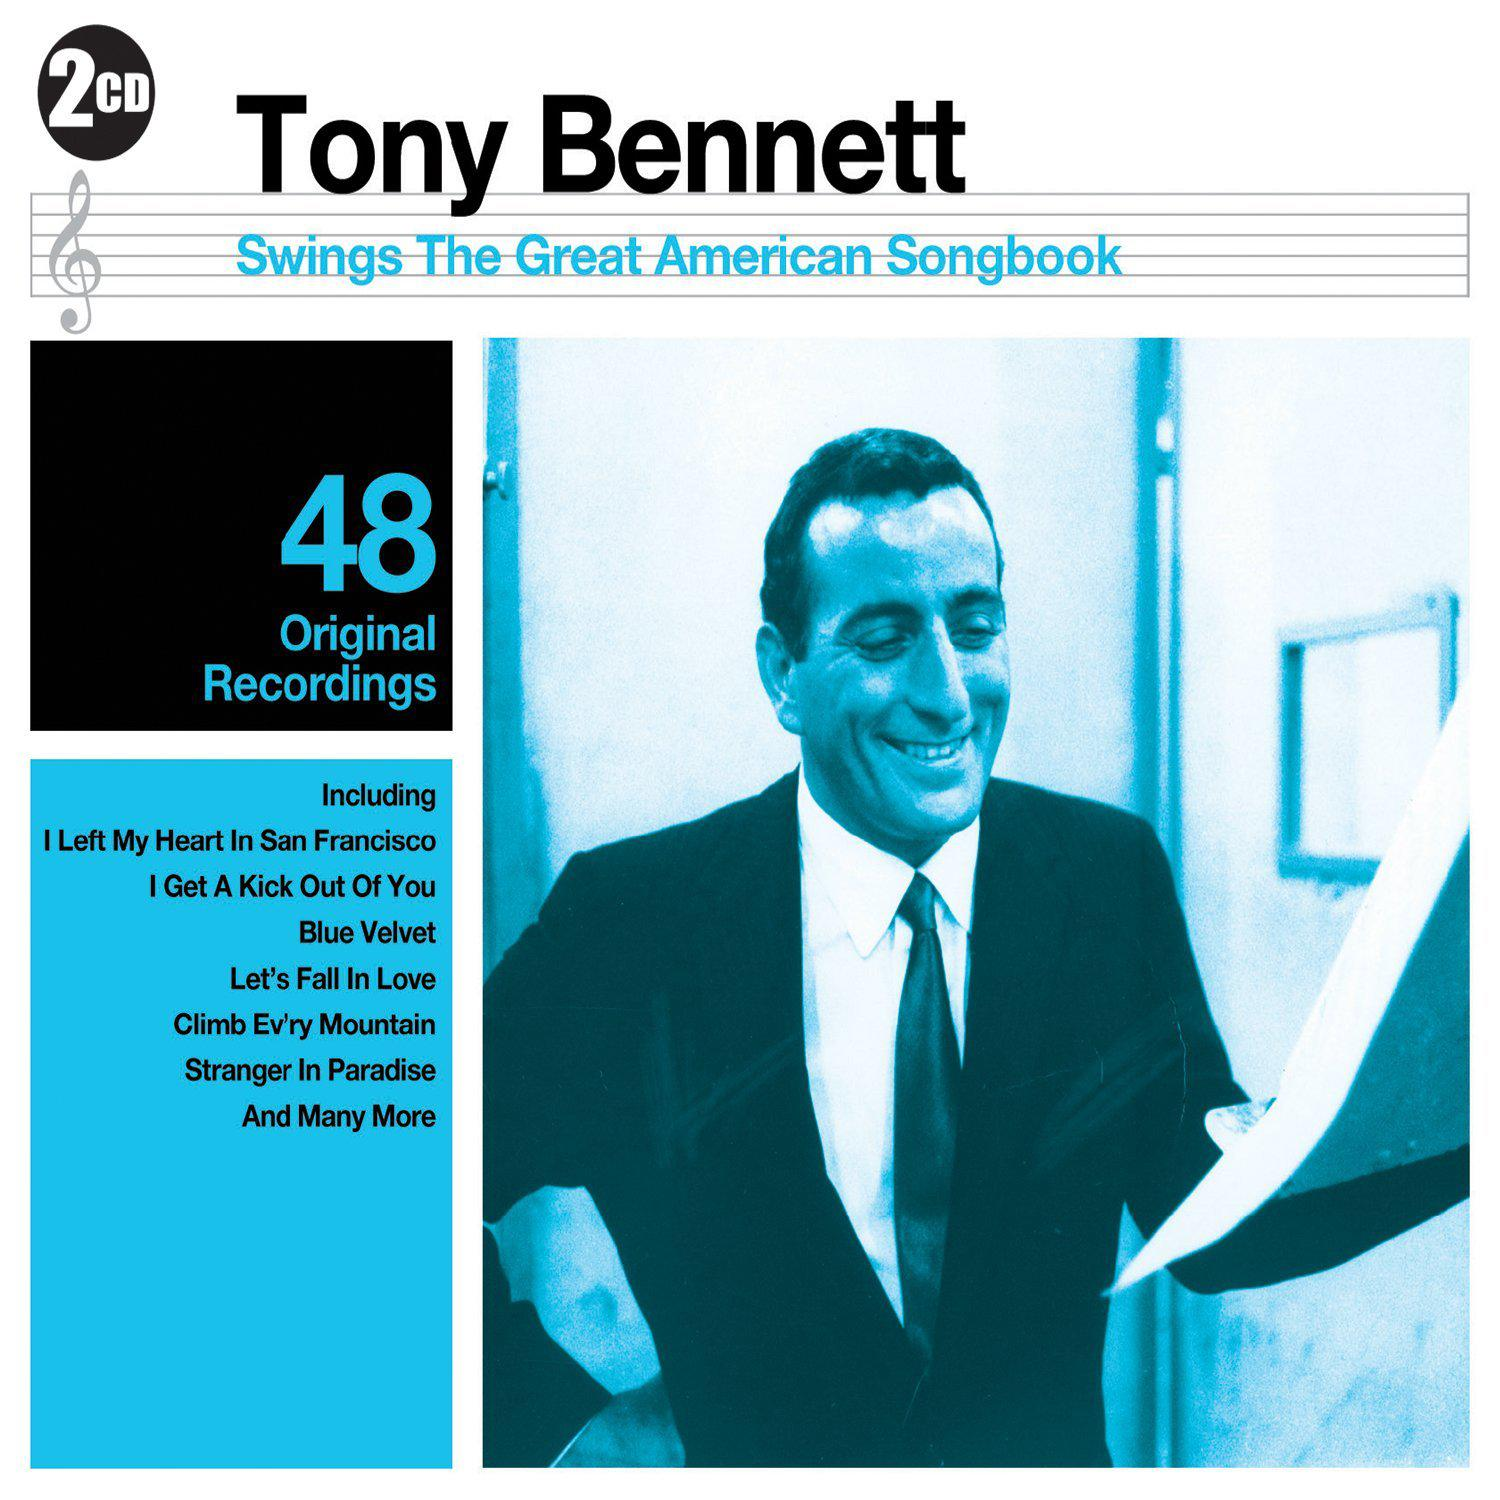 Tony Bennett - Swings the Great American Songbook